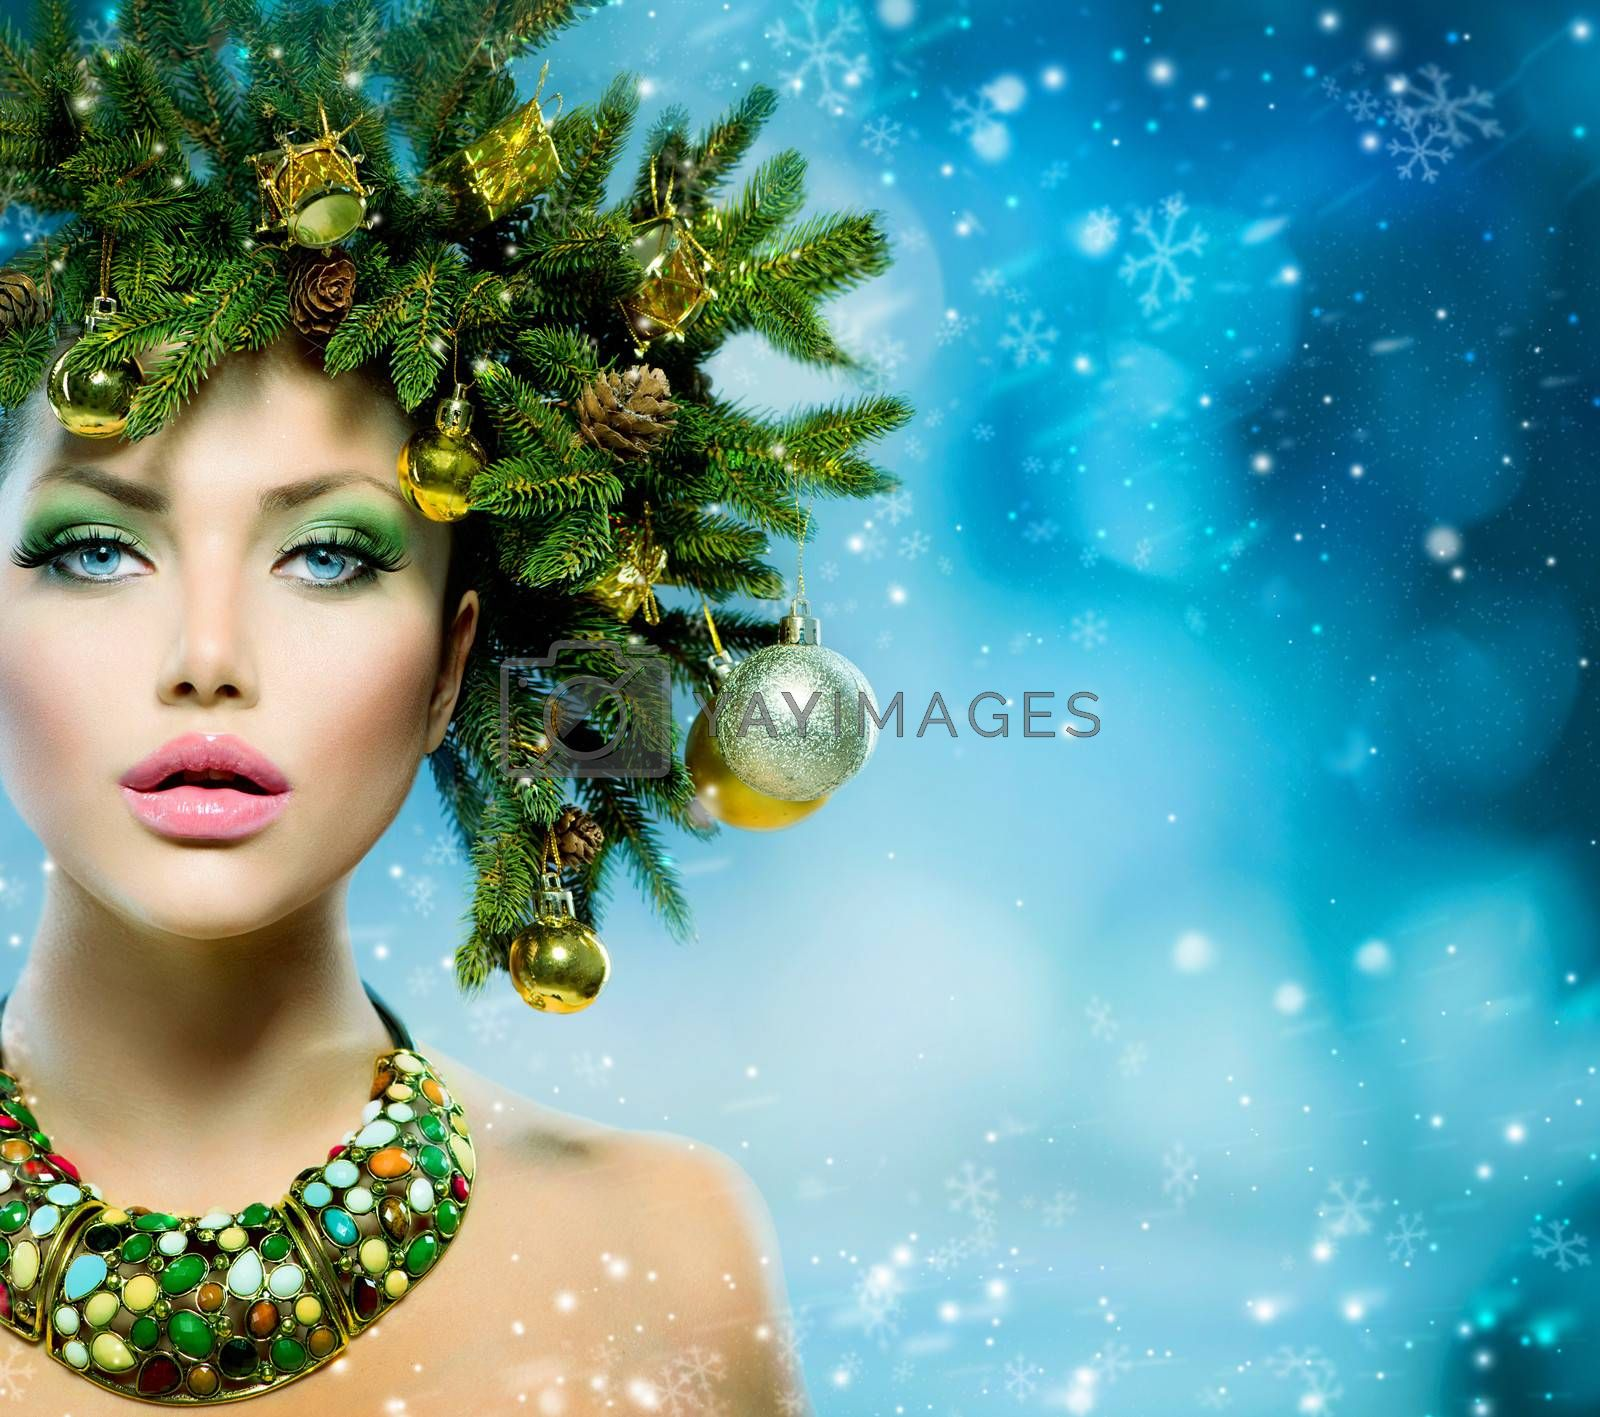 Christmas Woman. Christmas Tree Holiday Hairstyle and Makeup by Subbotina Anna